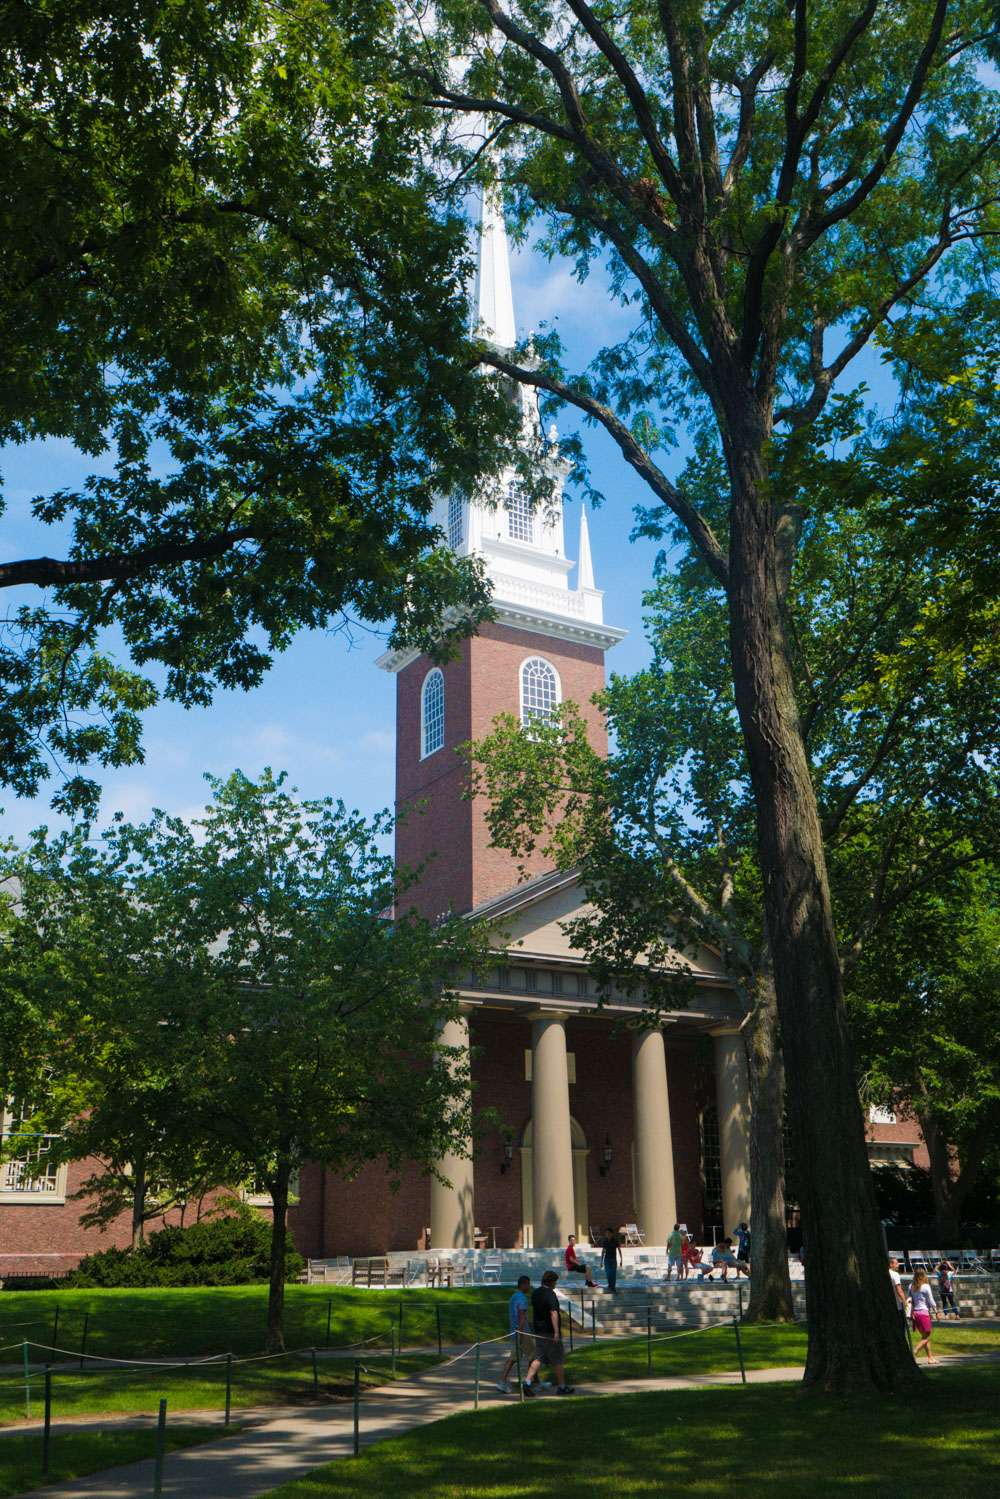 Eglise d'Harvard